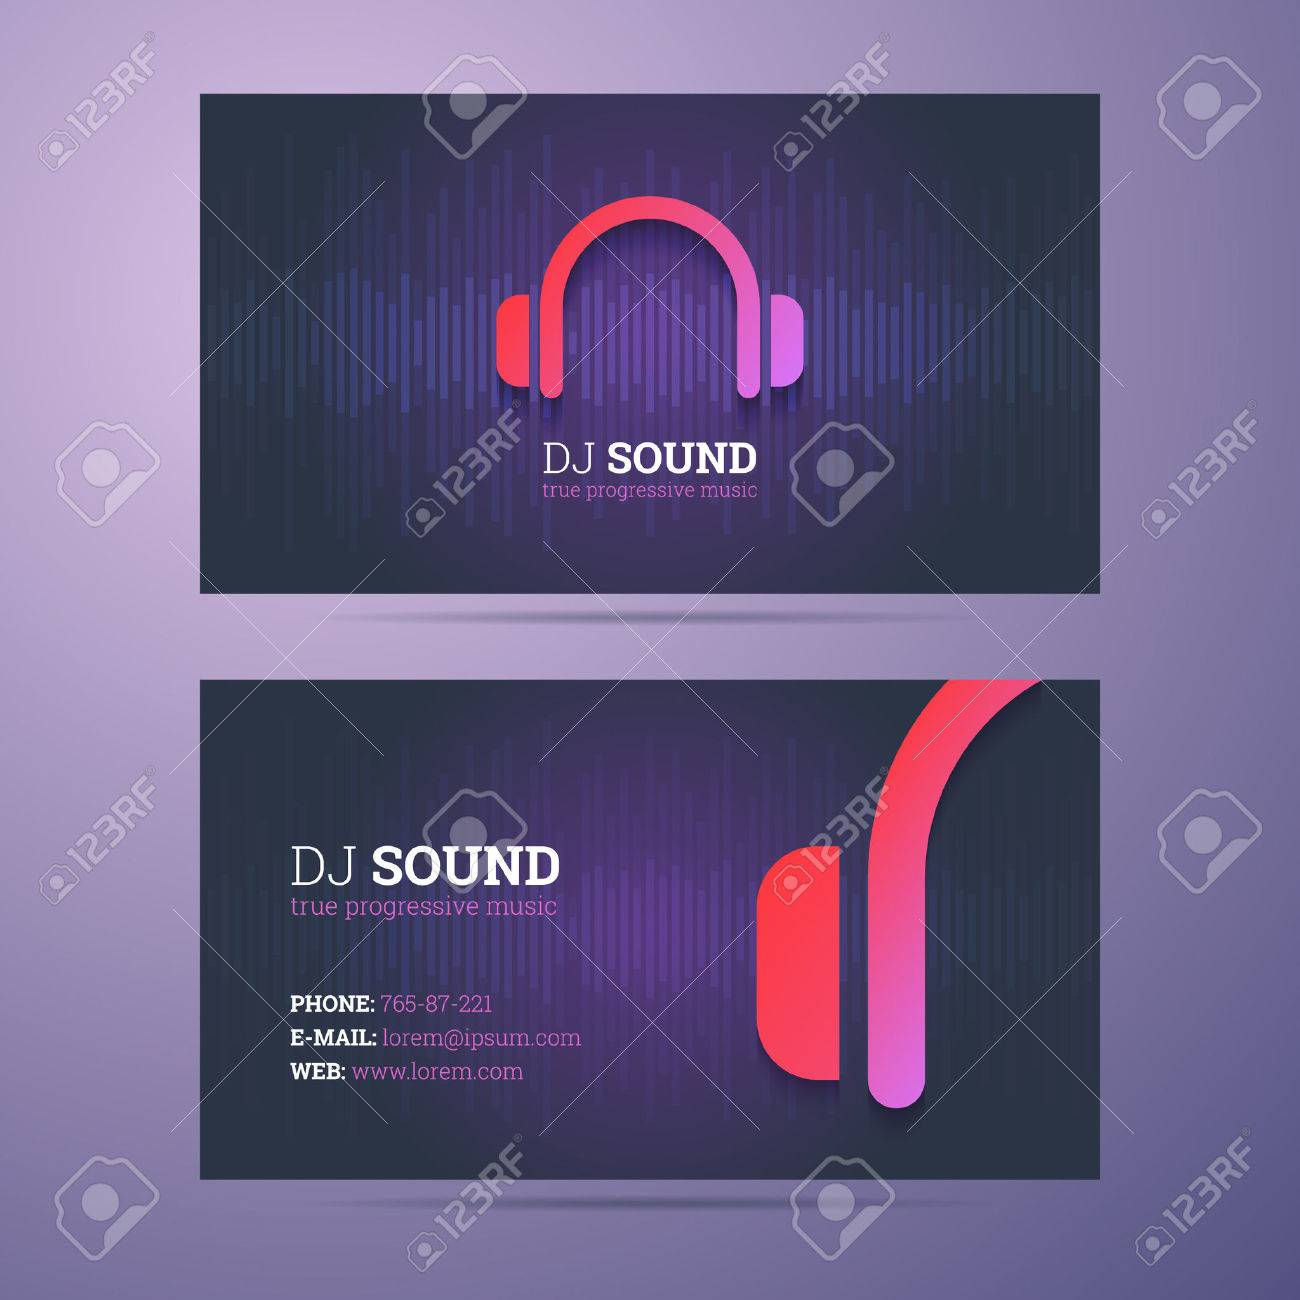 Business Card Template For Dj And Music Business With Headphones ...